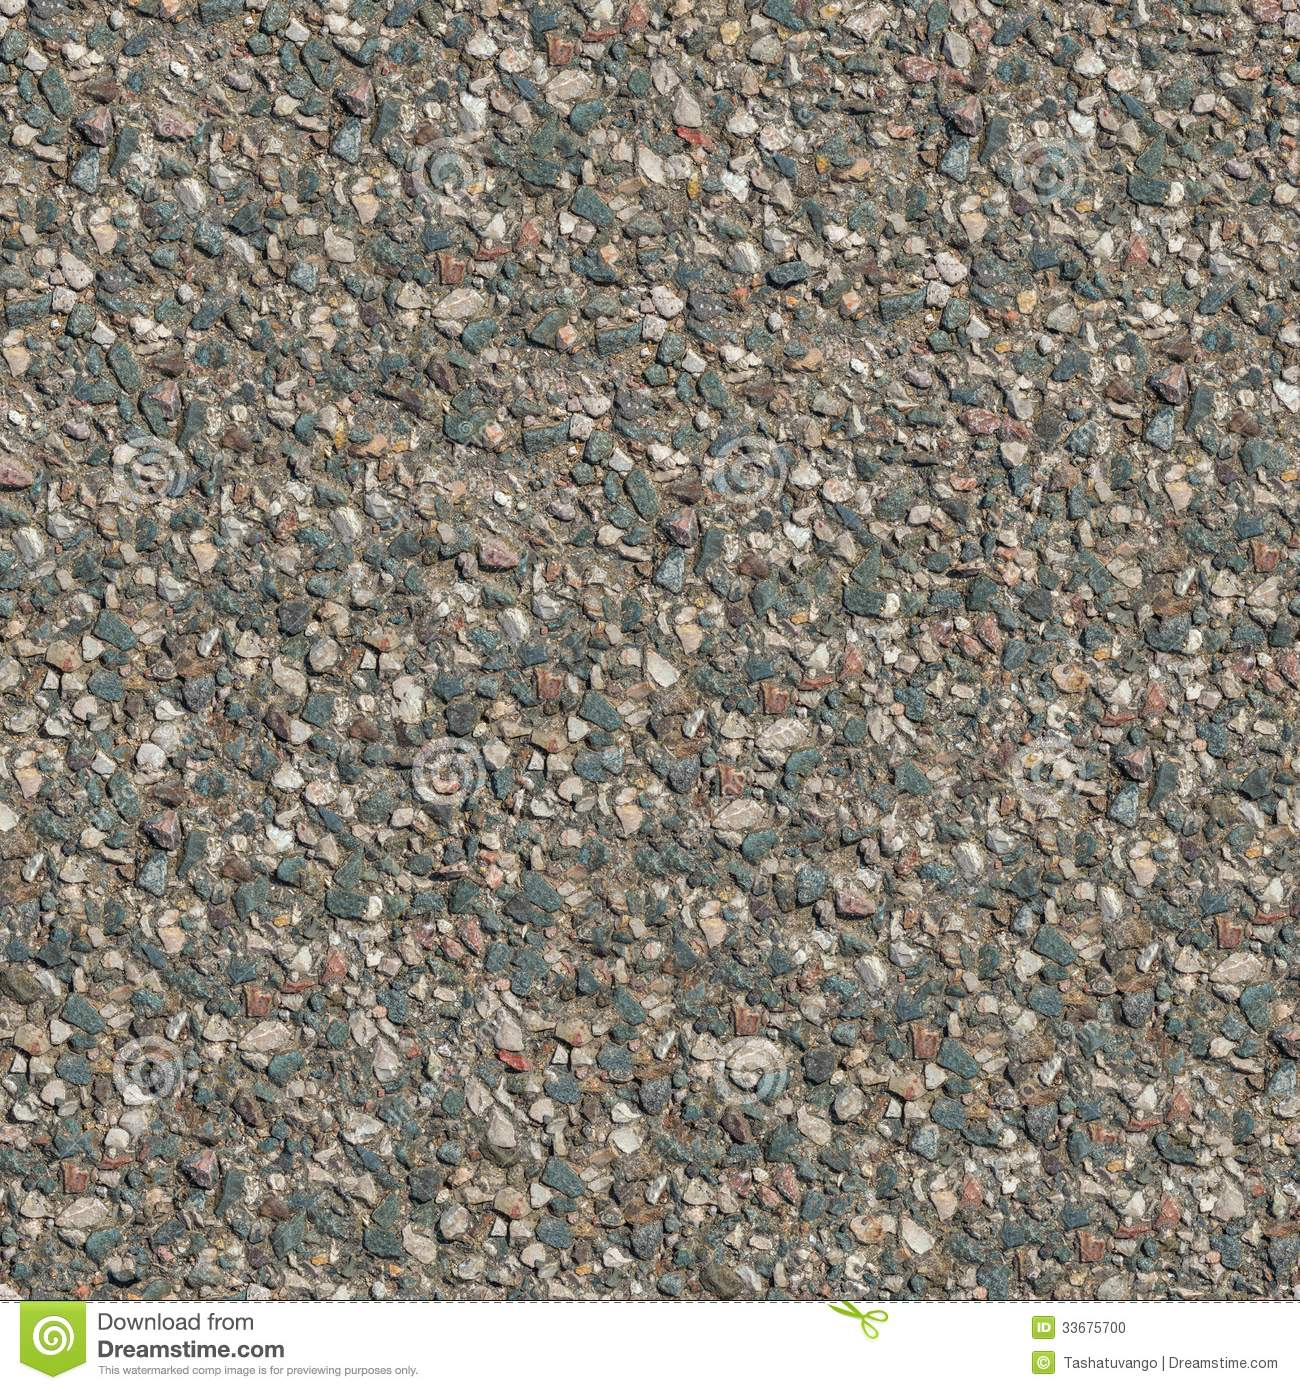 Seamless Tileable Texture of Fragment of Old Stone Road  Big Size Seamless Stone Road Texture